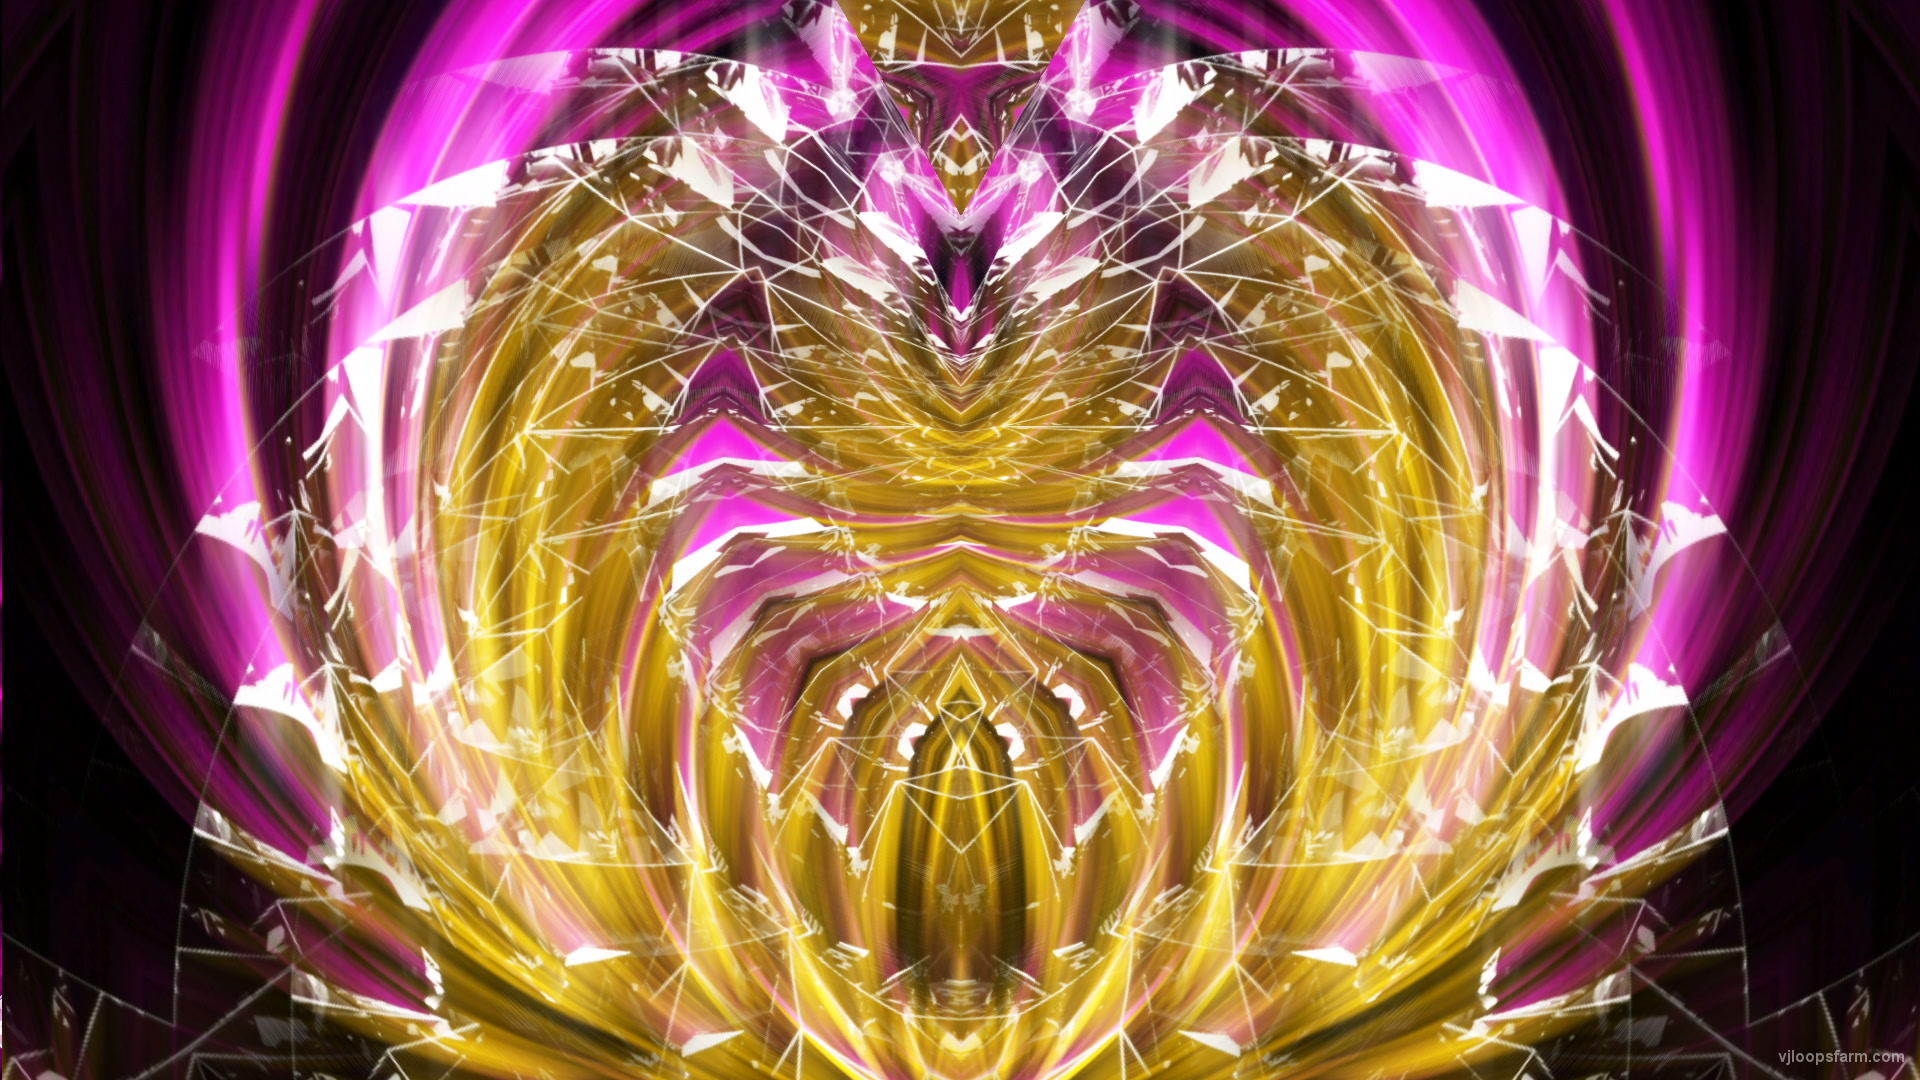 vj video background Yellow-Wireframe-Cyber-Egg-with-Pink-Rays-Effect-Motion-Background-Video-Art-VJ-Loop_003